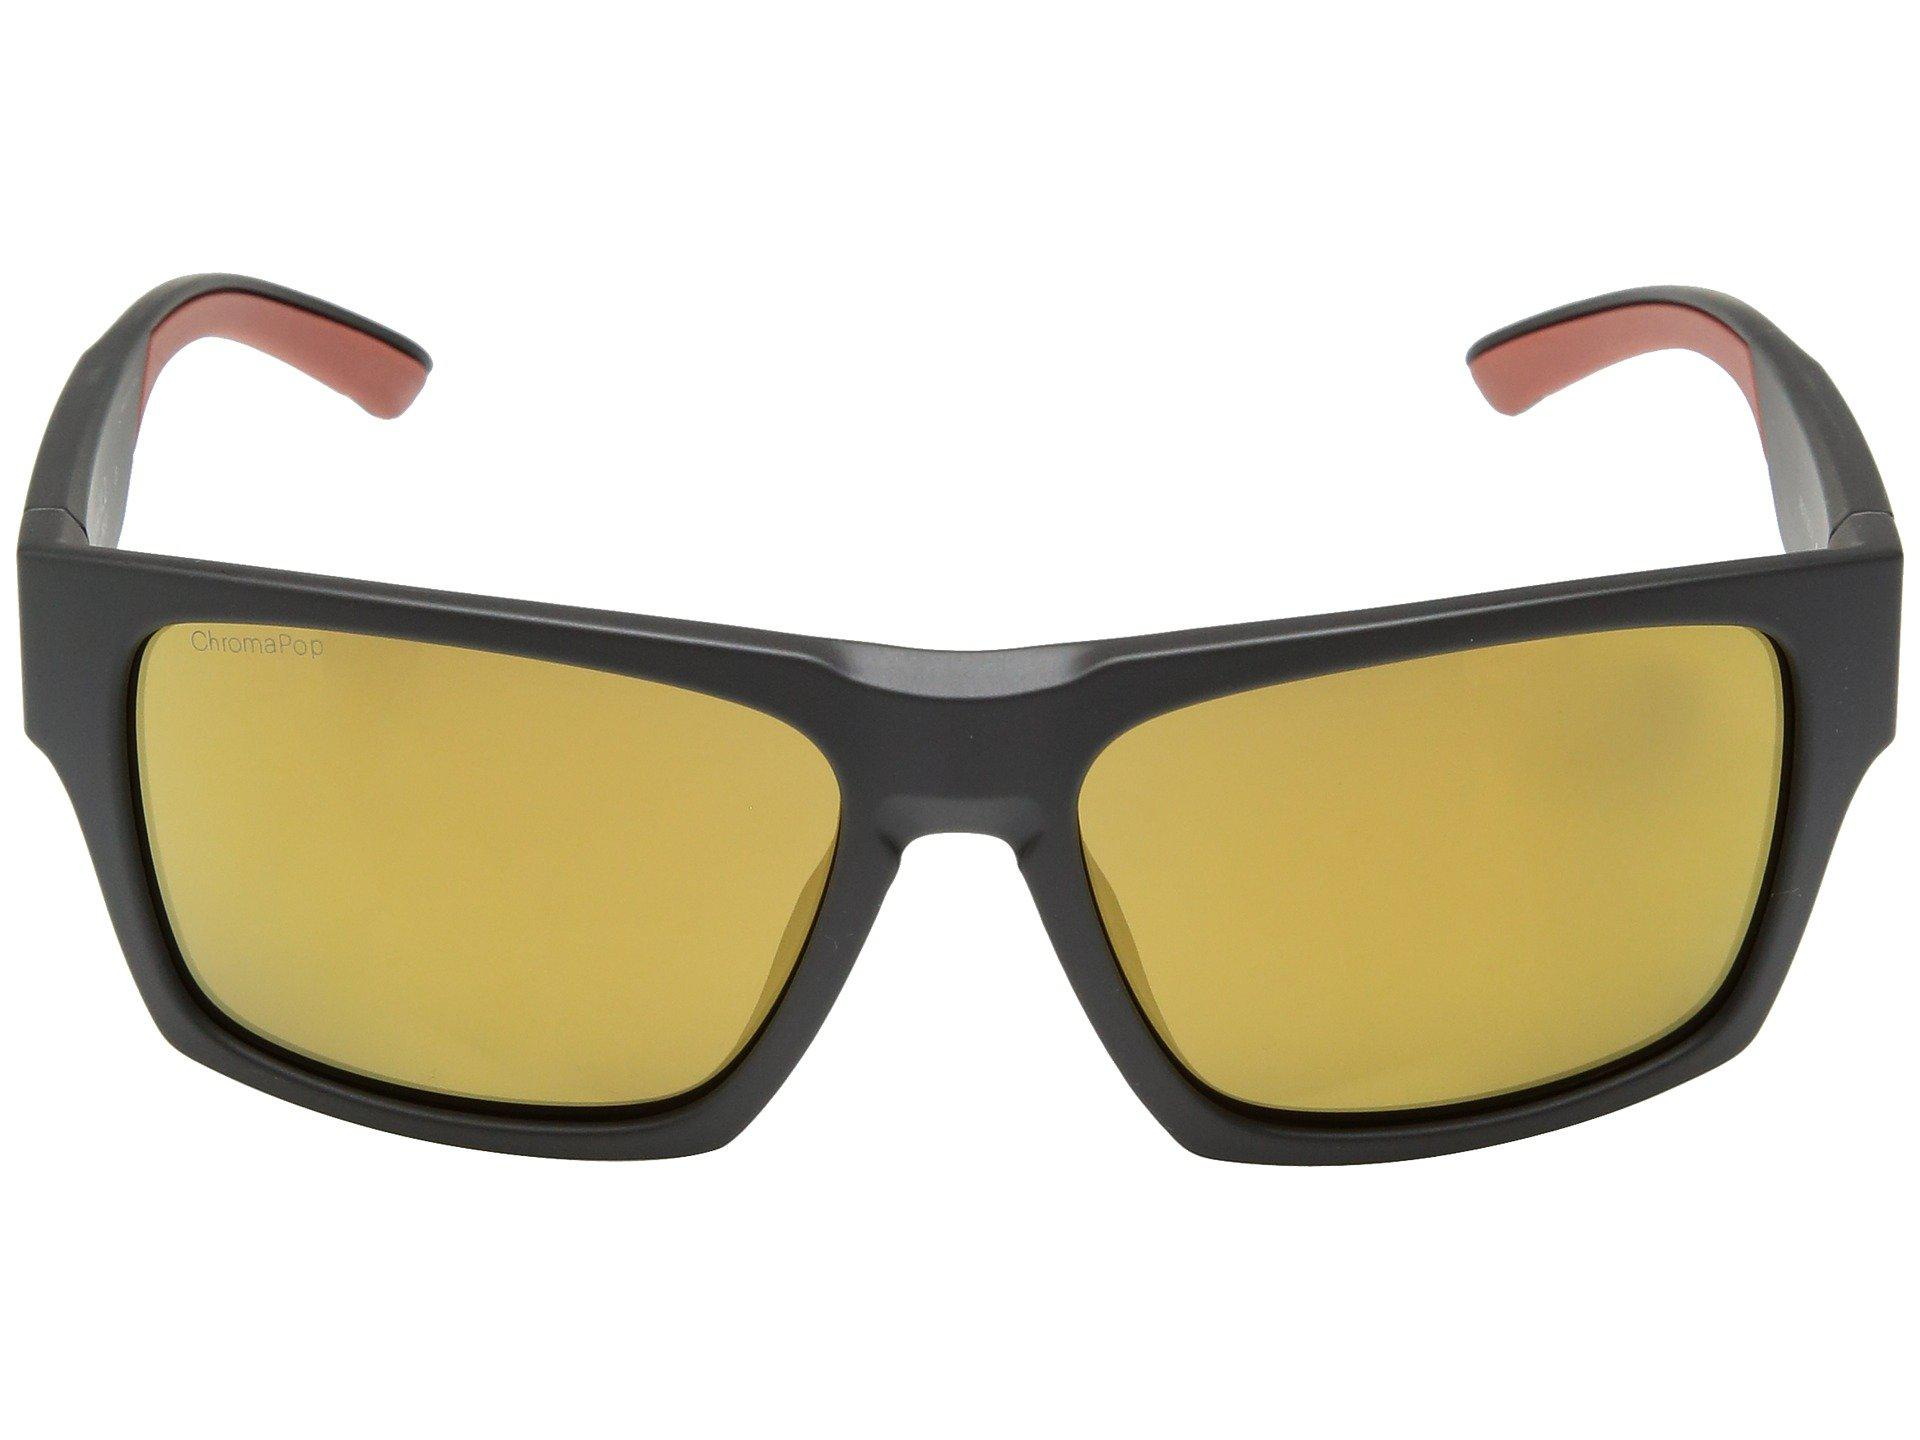 fd128123662 Smith Optics - Multicolor Outlier 2 Xl (matte Tortoise brown Chromapoptm  Polarized Lens). View fullscreen